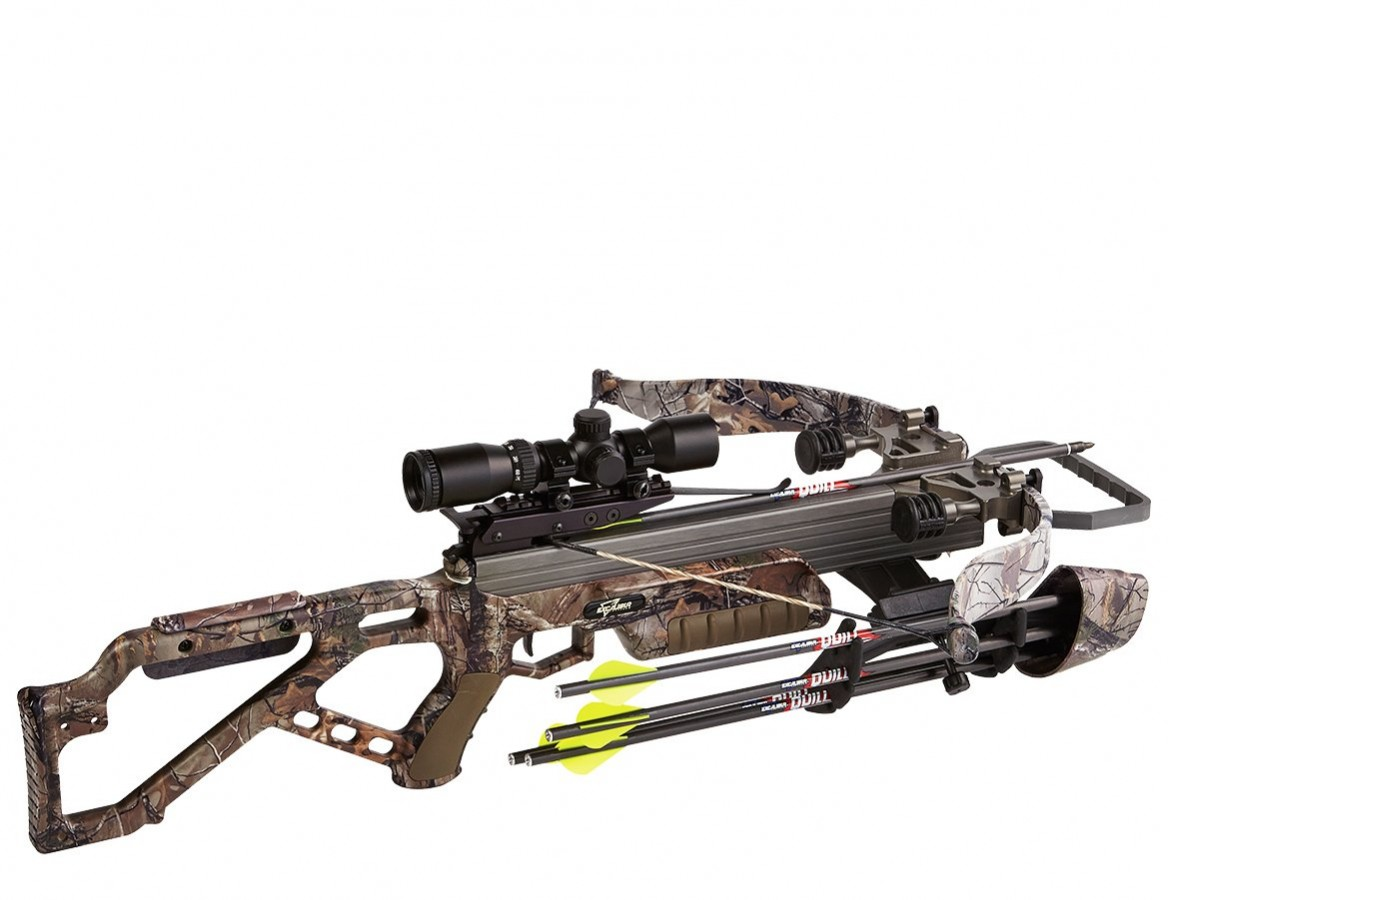 The Micro 355 is a top-rated recurve crossbow.